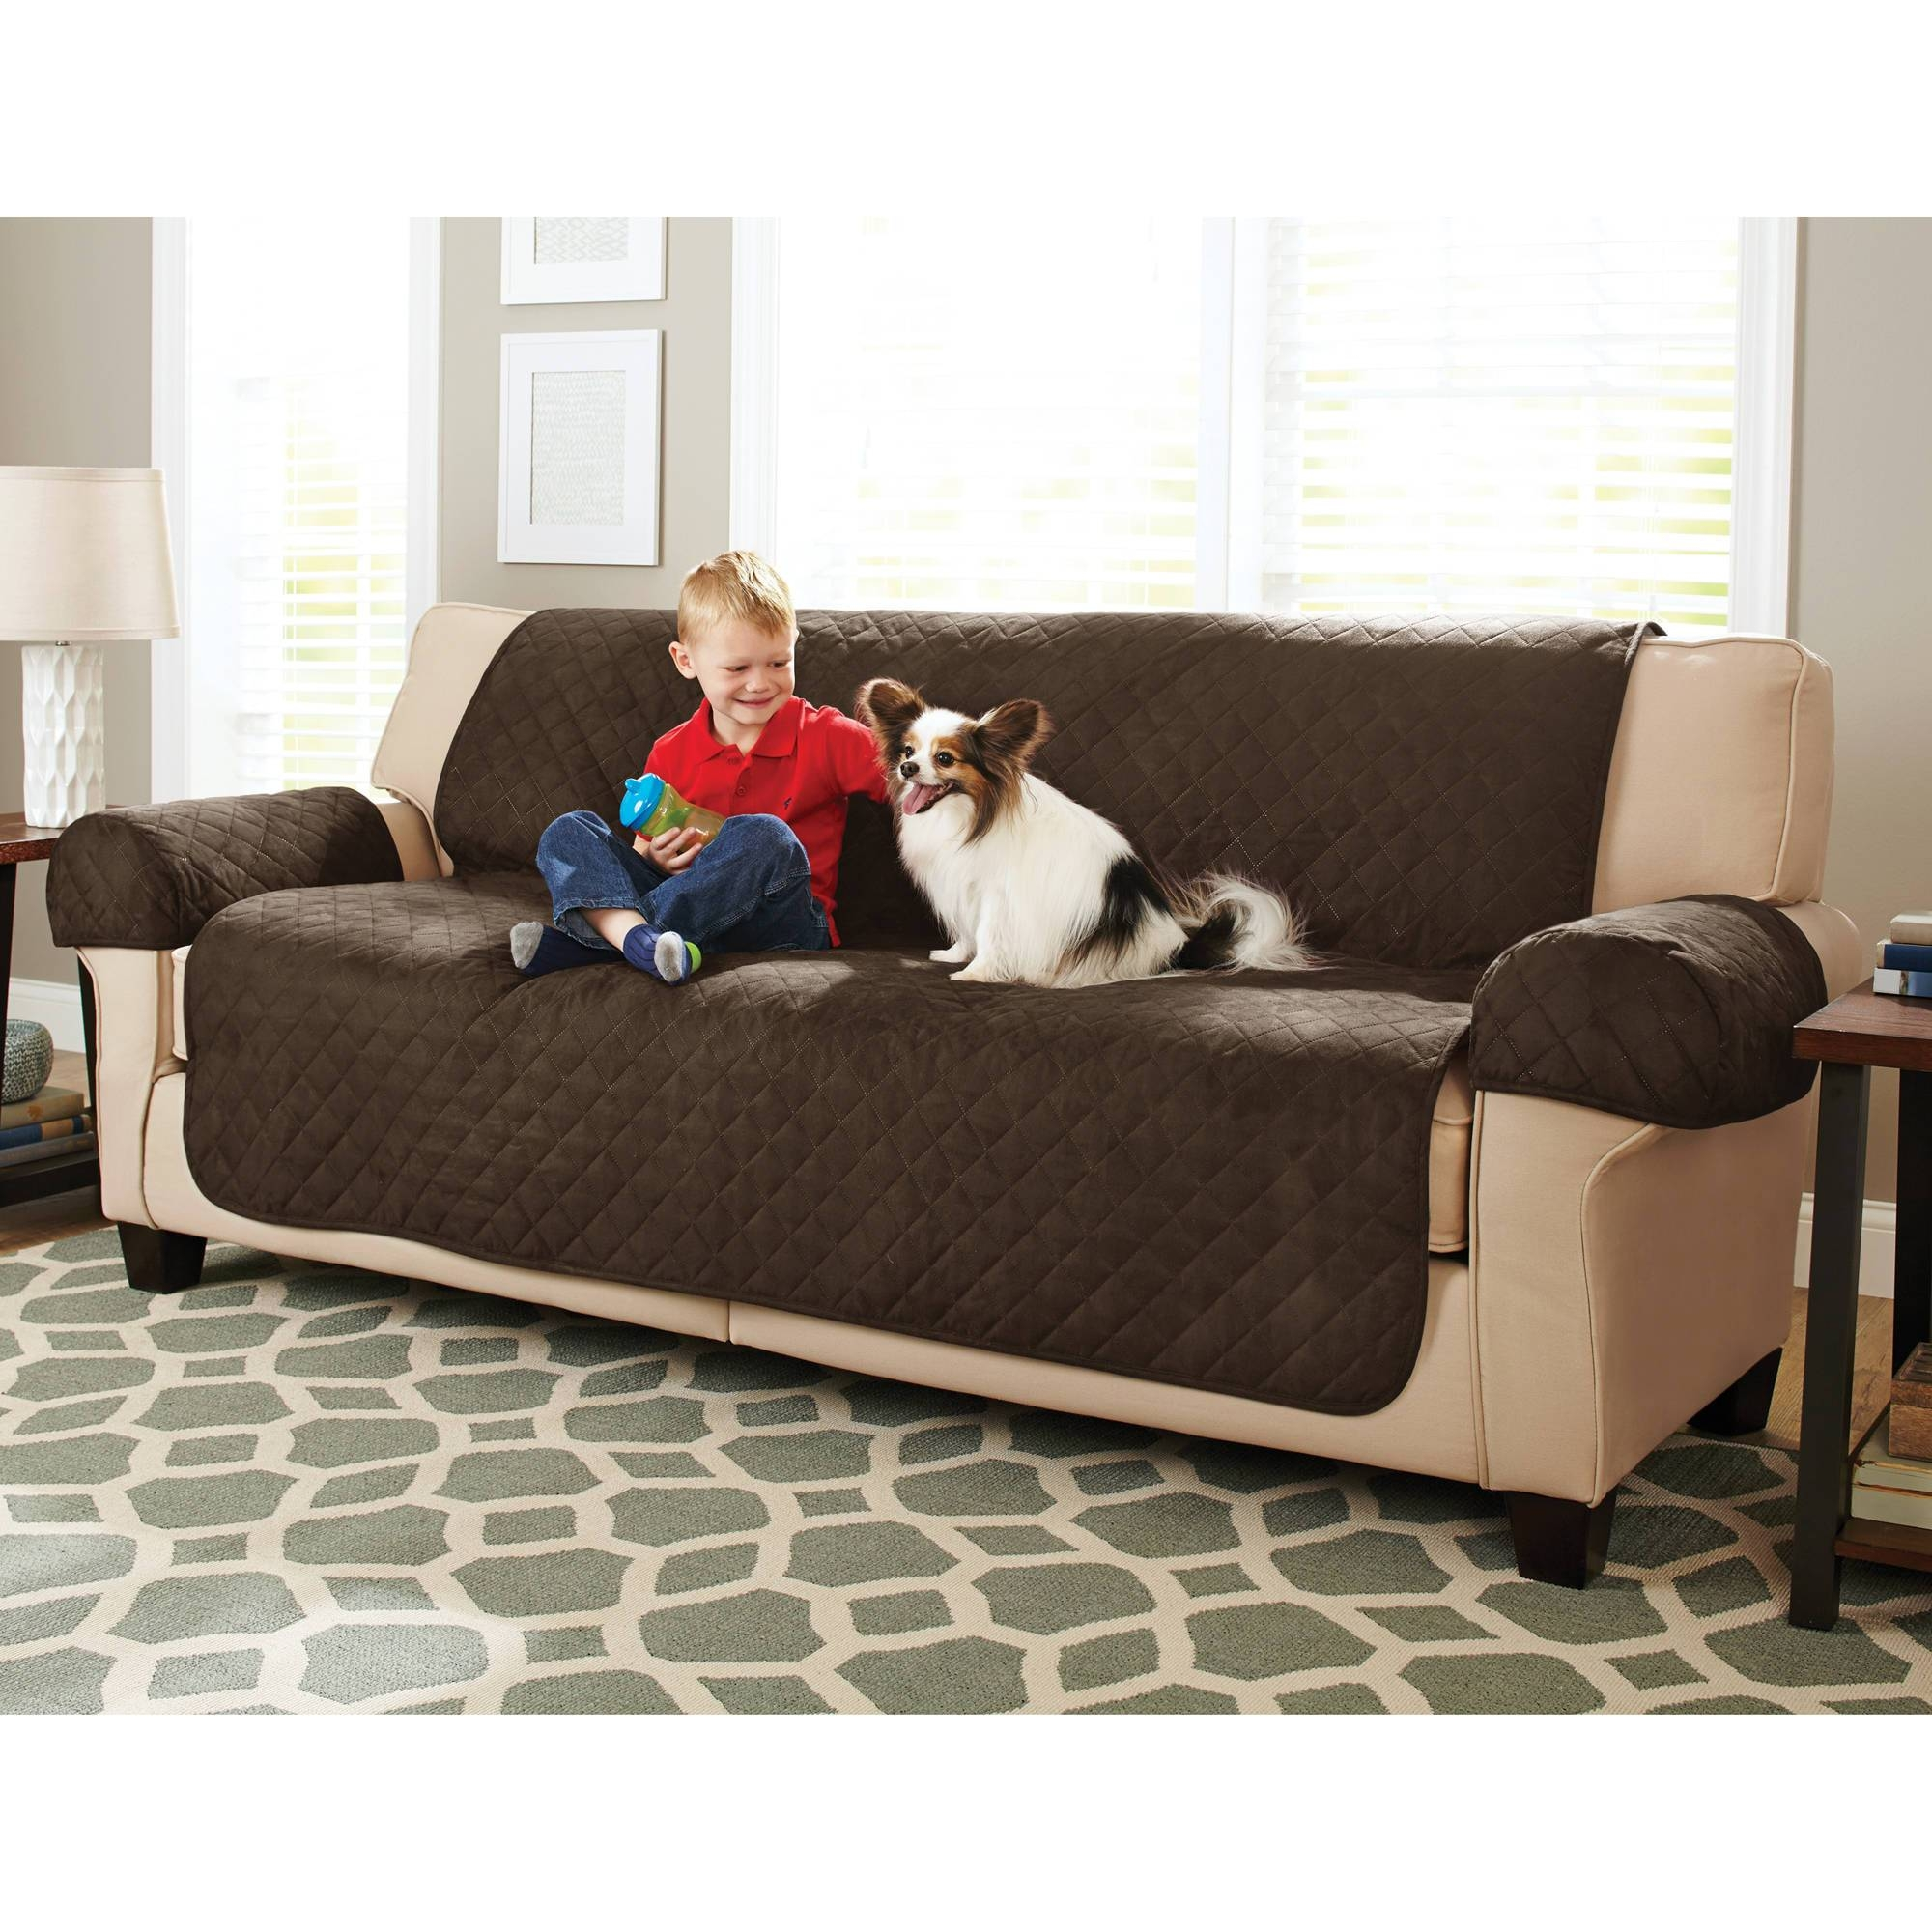 Furniture: Cheap Sofa Covers | Chair Covers Walmart | Cheap Sofa intended for Covers for Sofas and Chairs (Image 6 of 15)